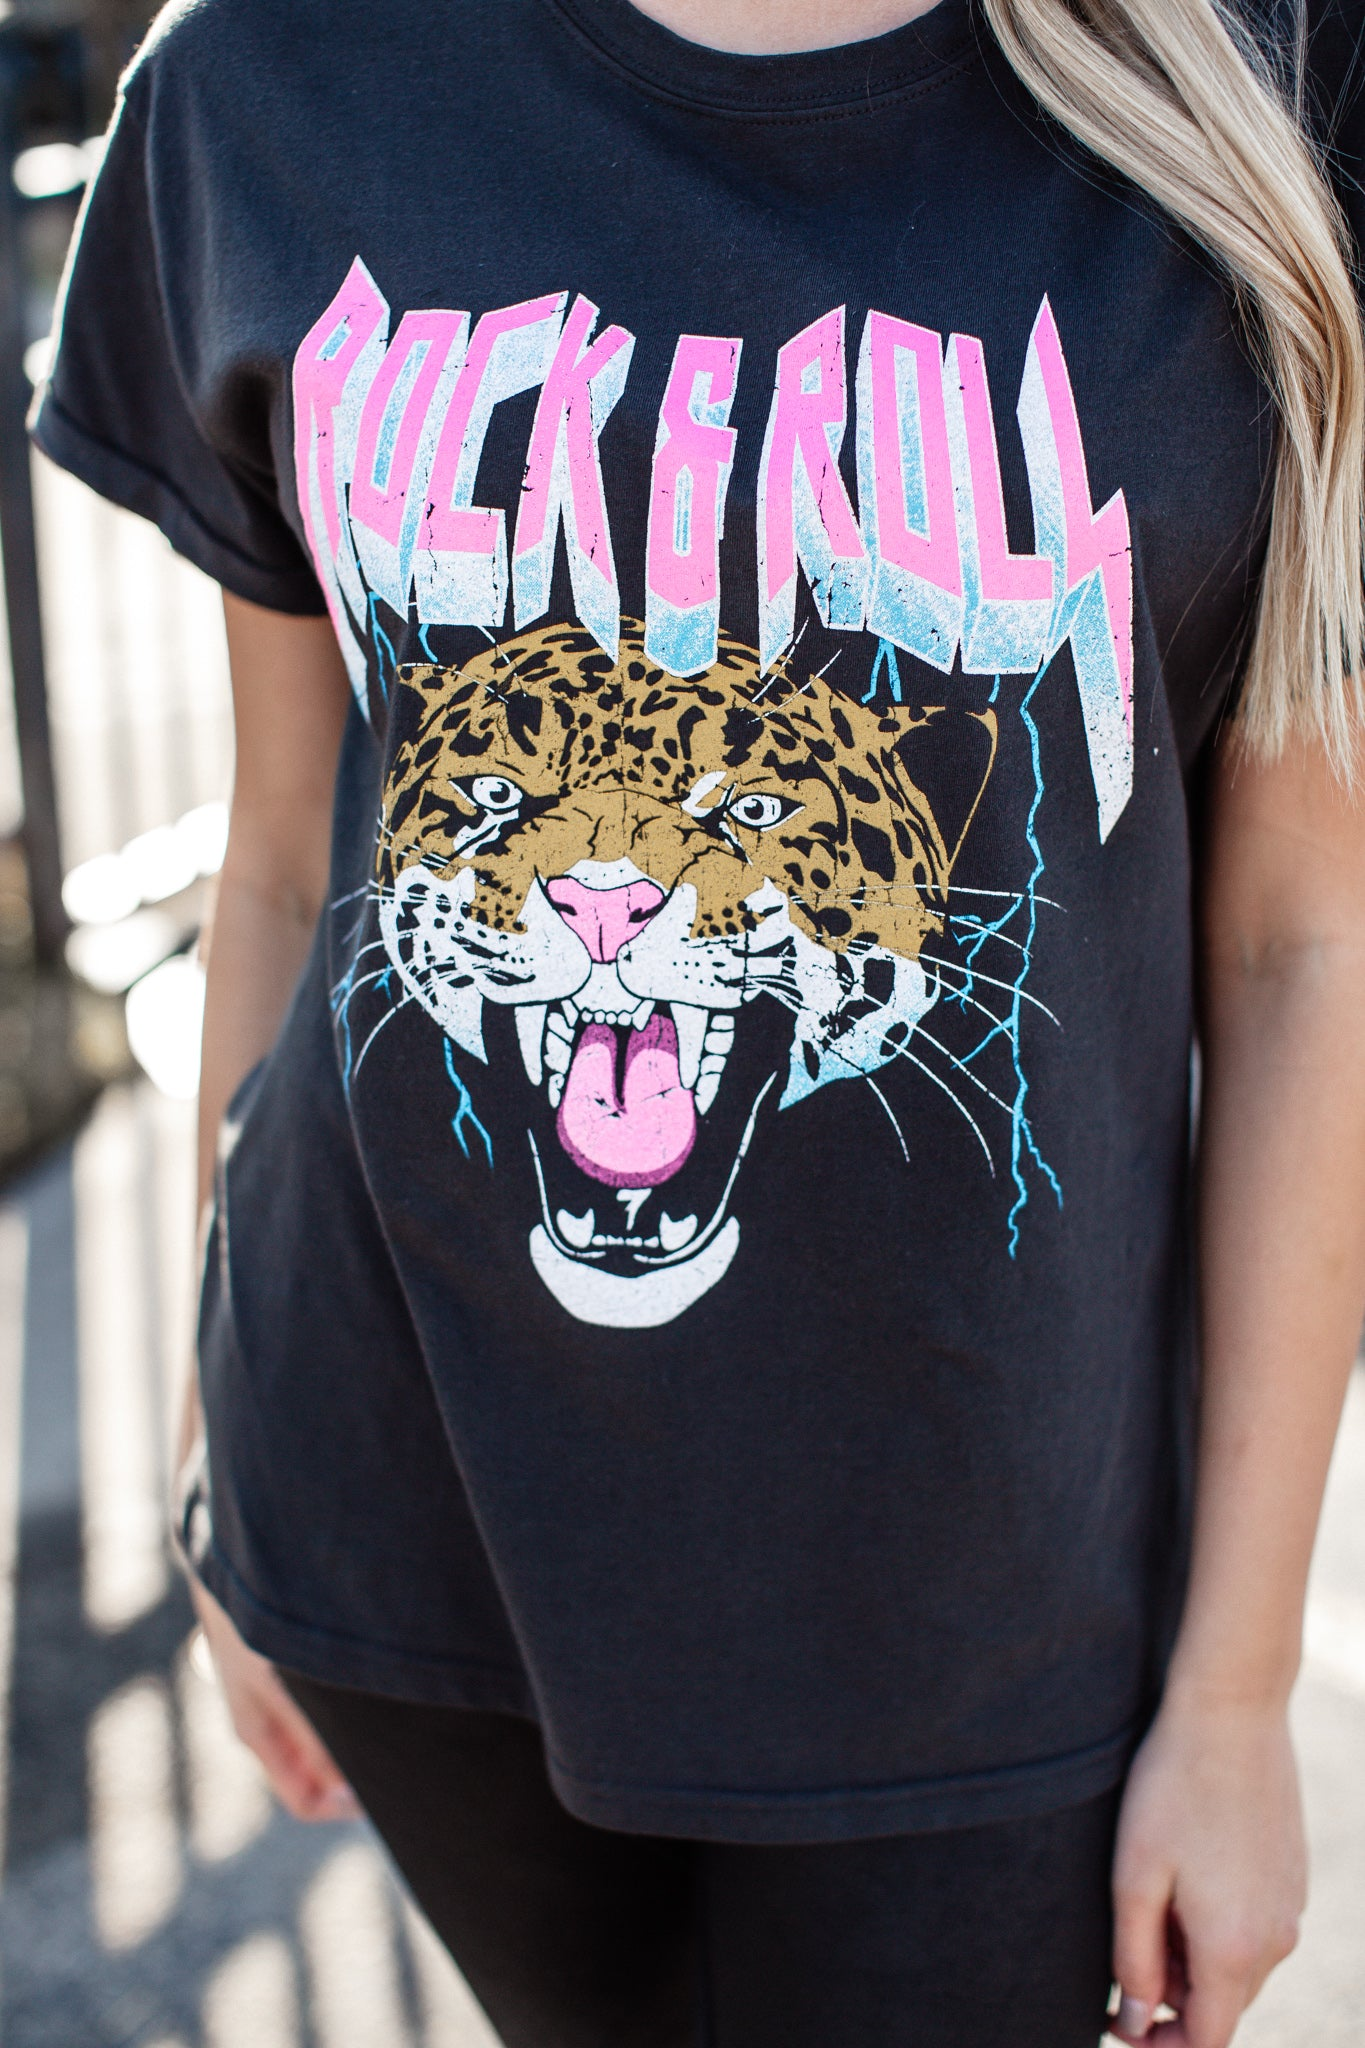 Rock and Roll Cheetah Top *BLACK